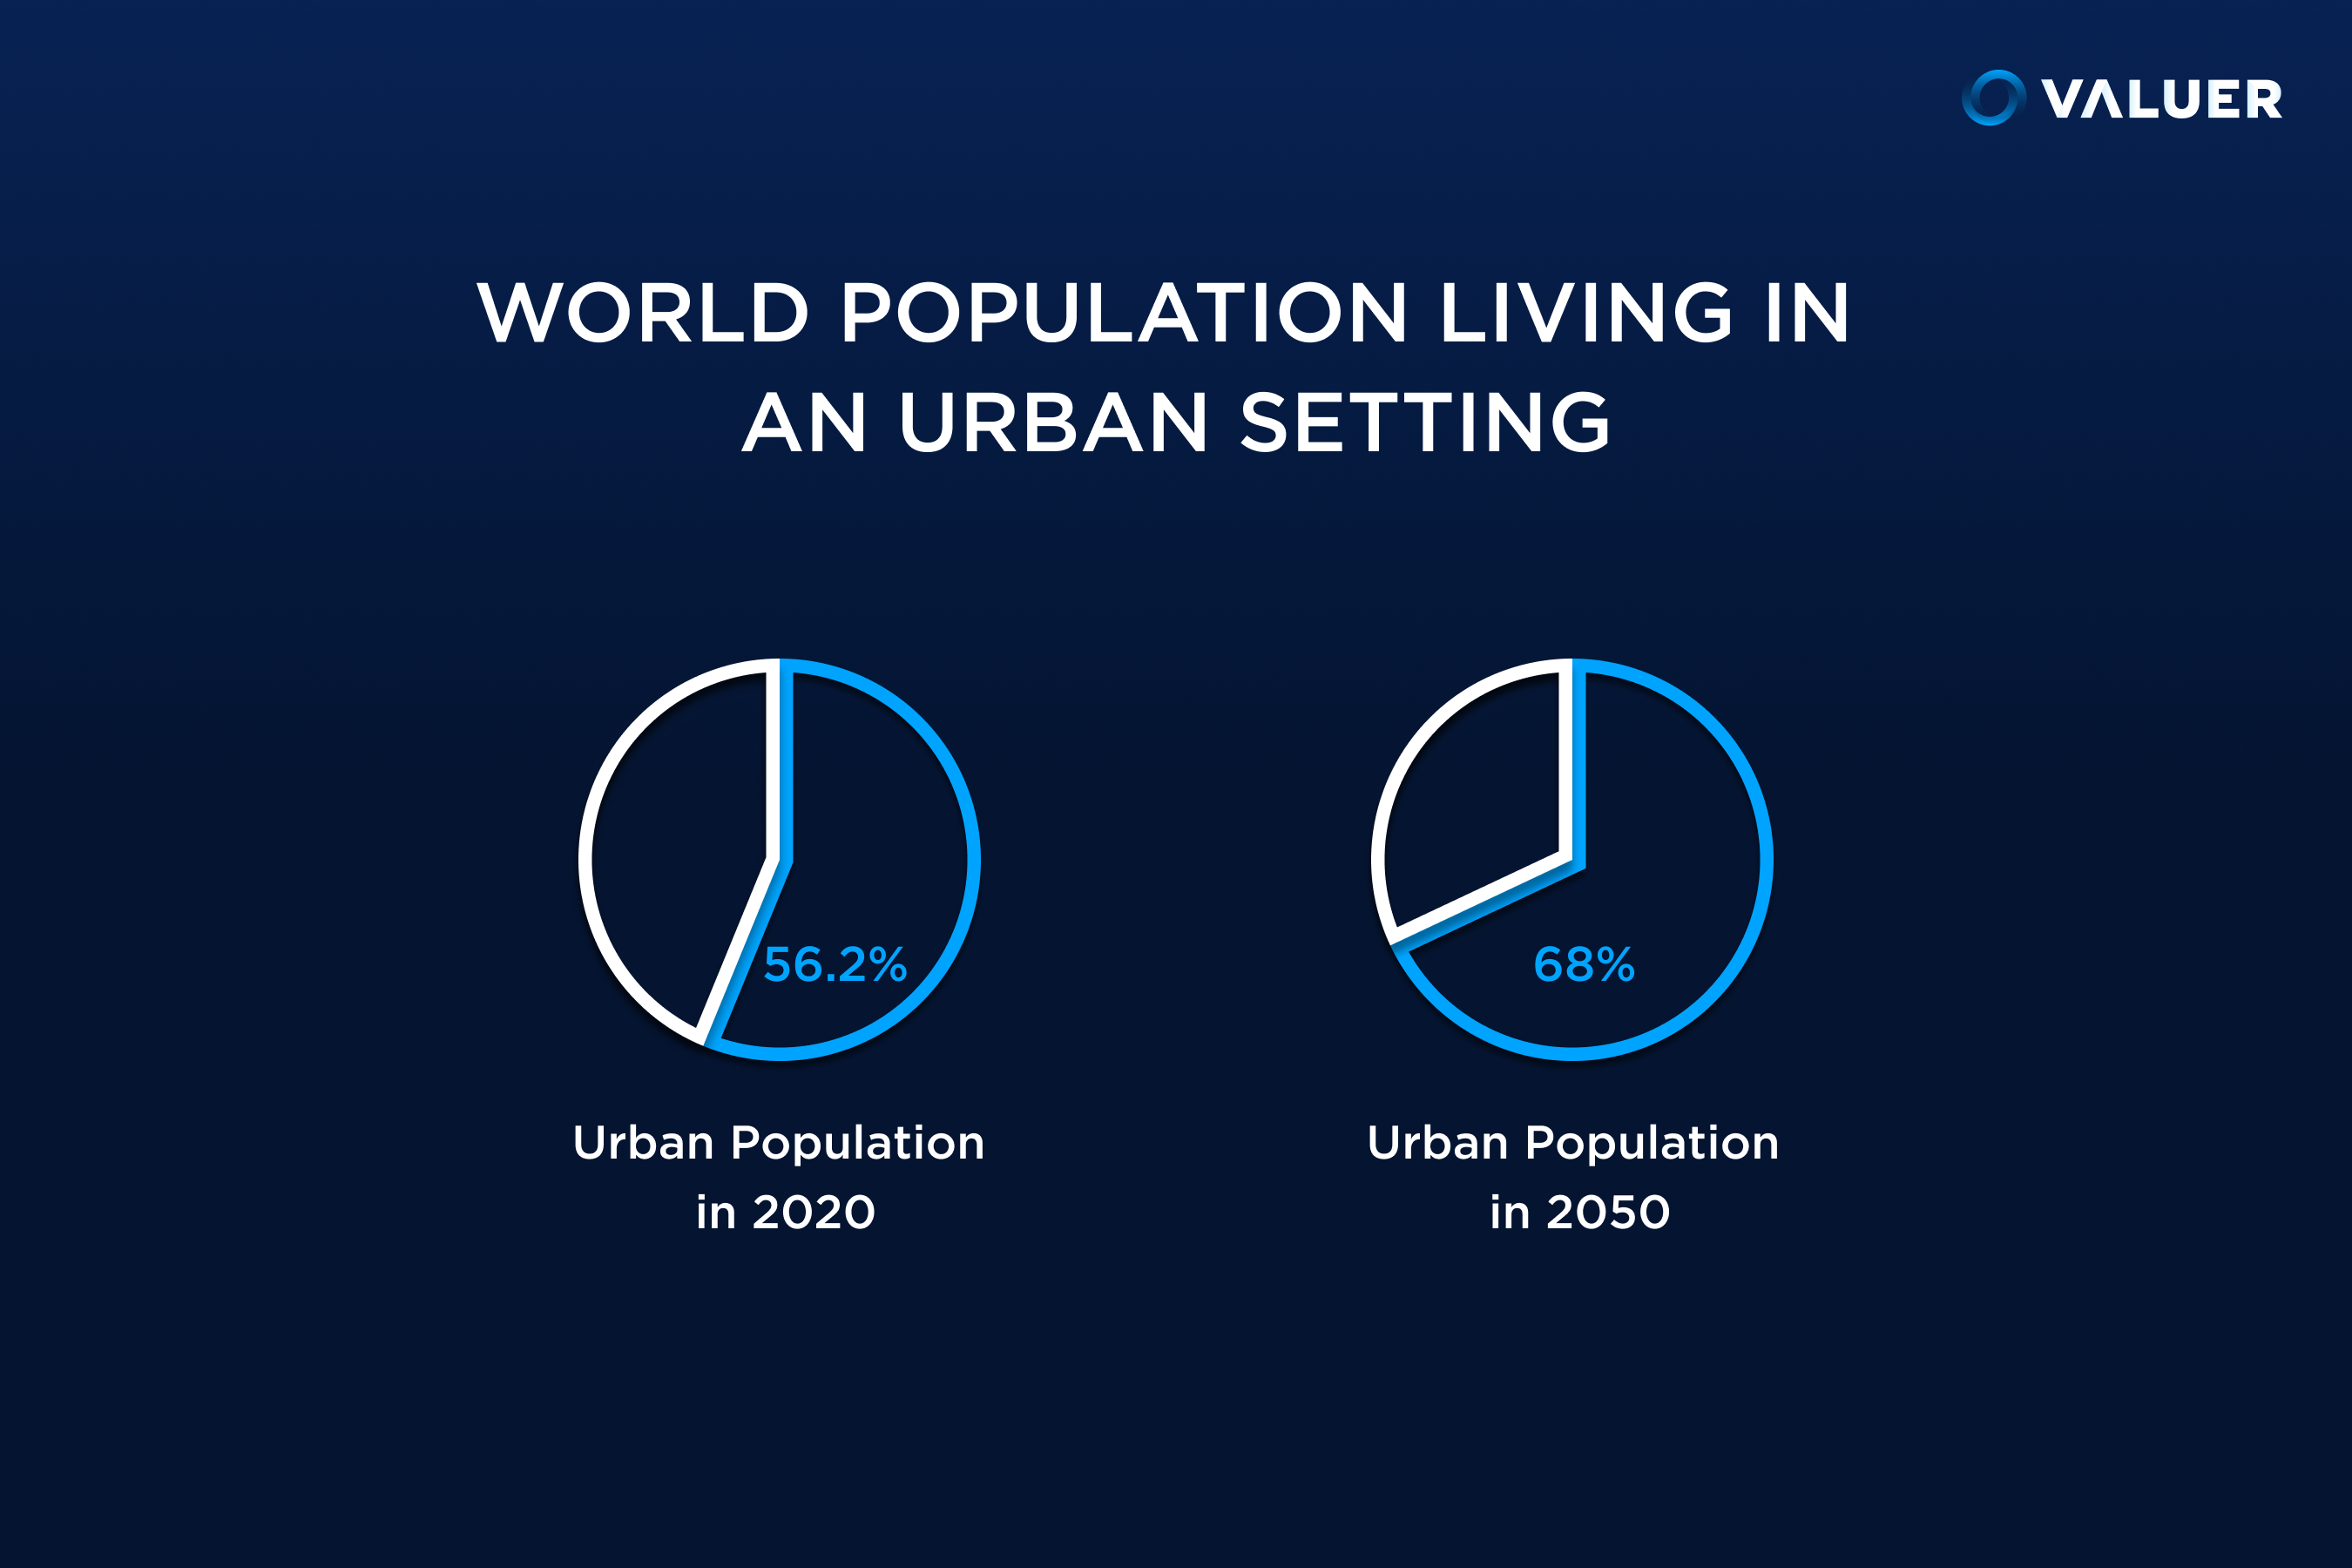 world population living in an urban setting infographic